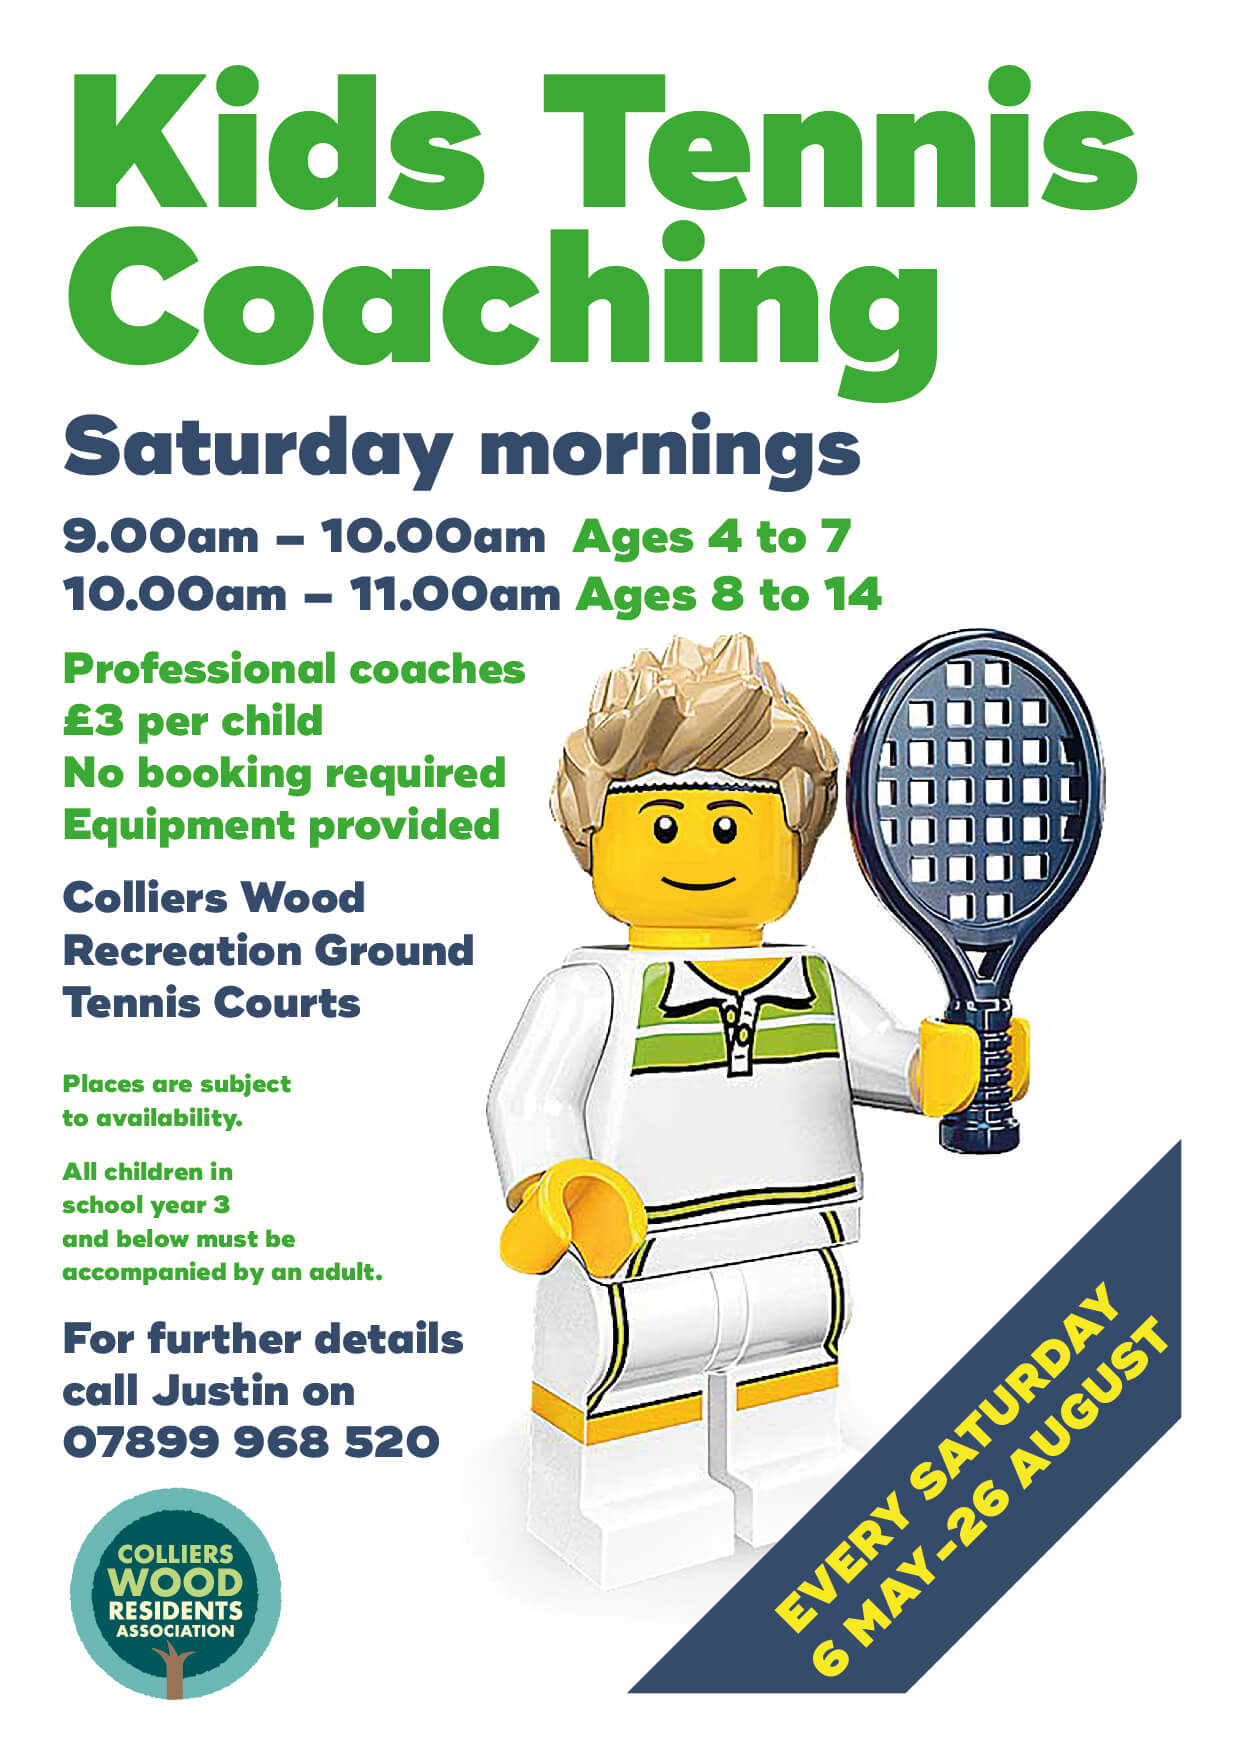 Kids Tennis Coaching